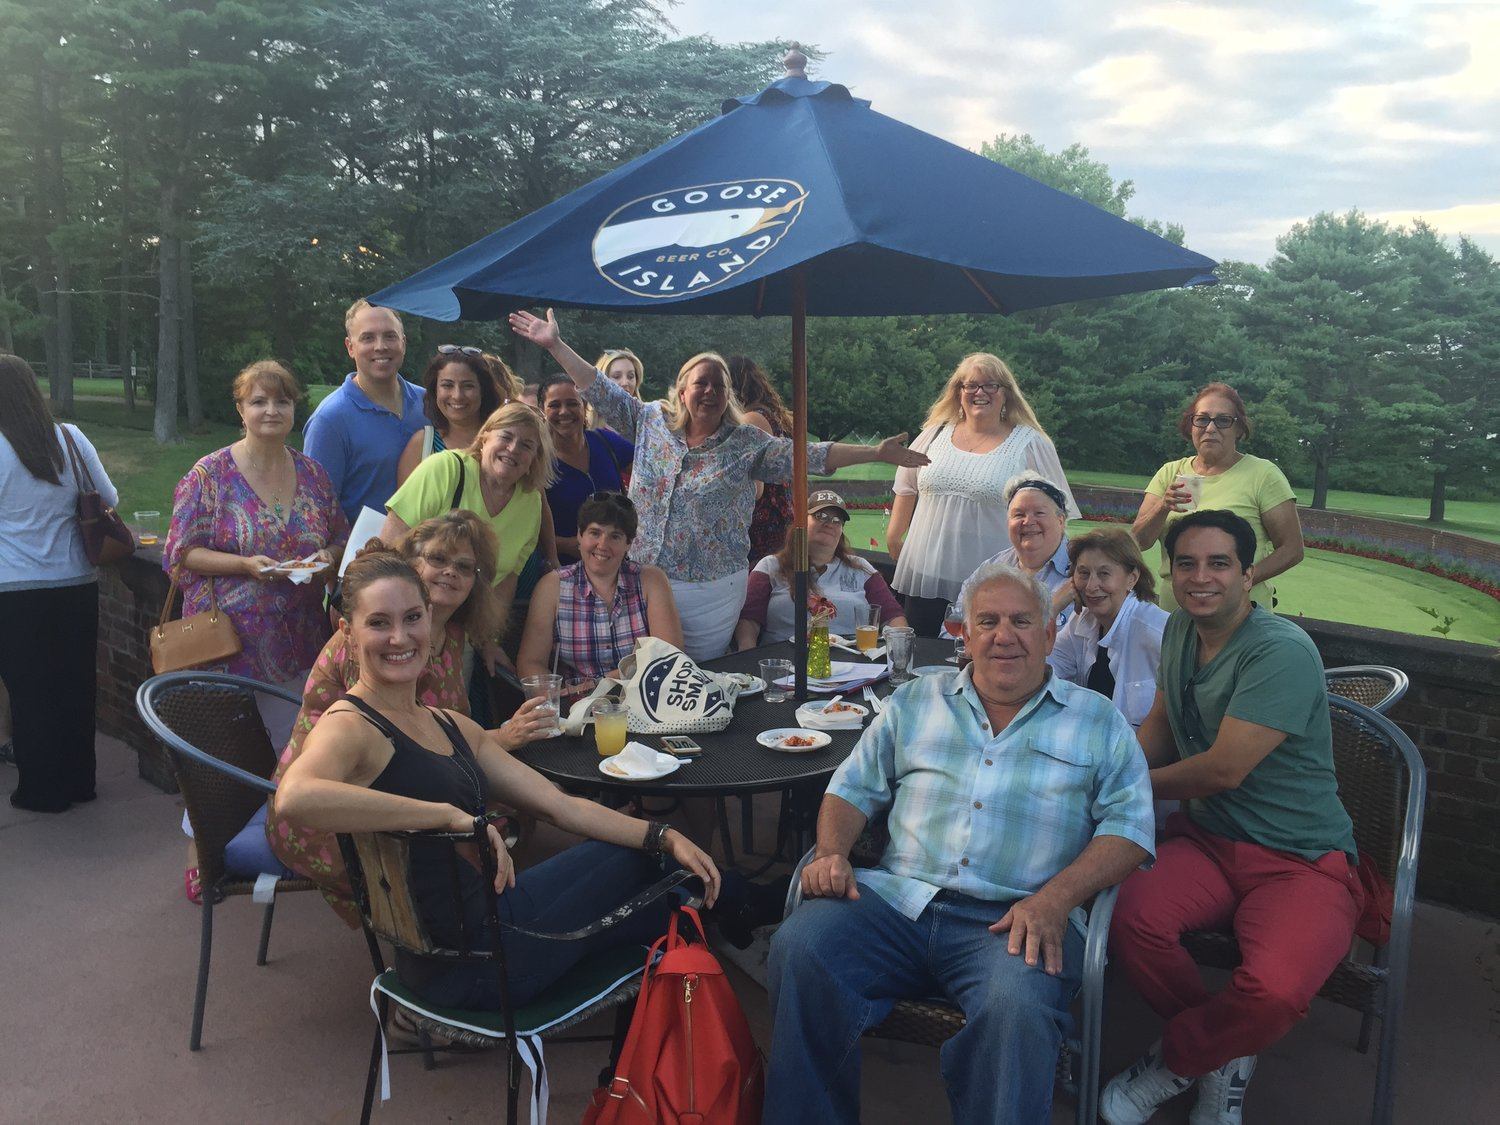 Events like the Happy Hour Fundraiser at the View Grill in Glen Cove have brought together local residents, business owners and leaders to benefit the community.